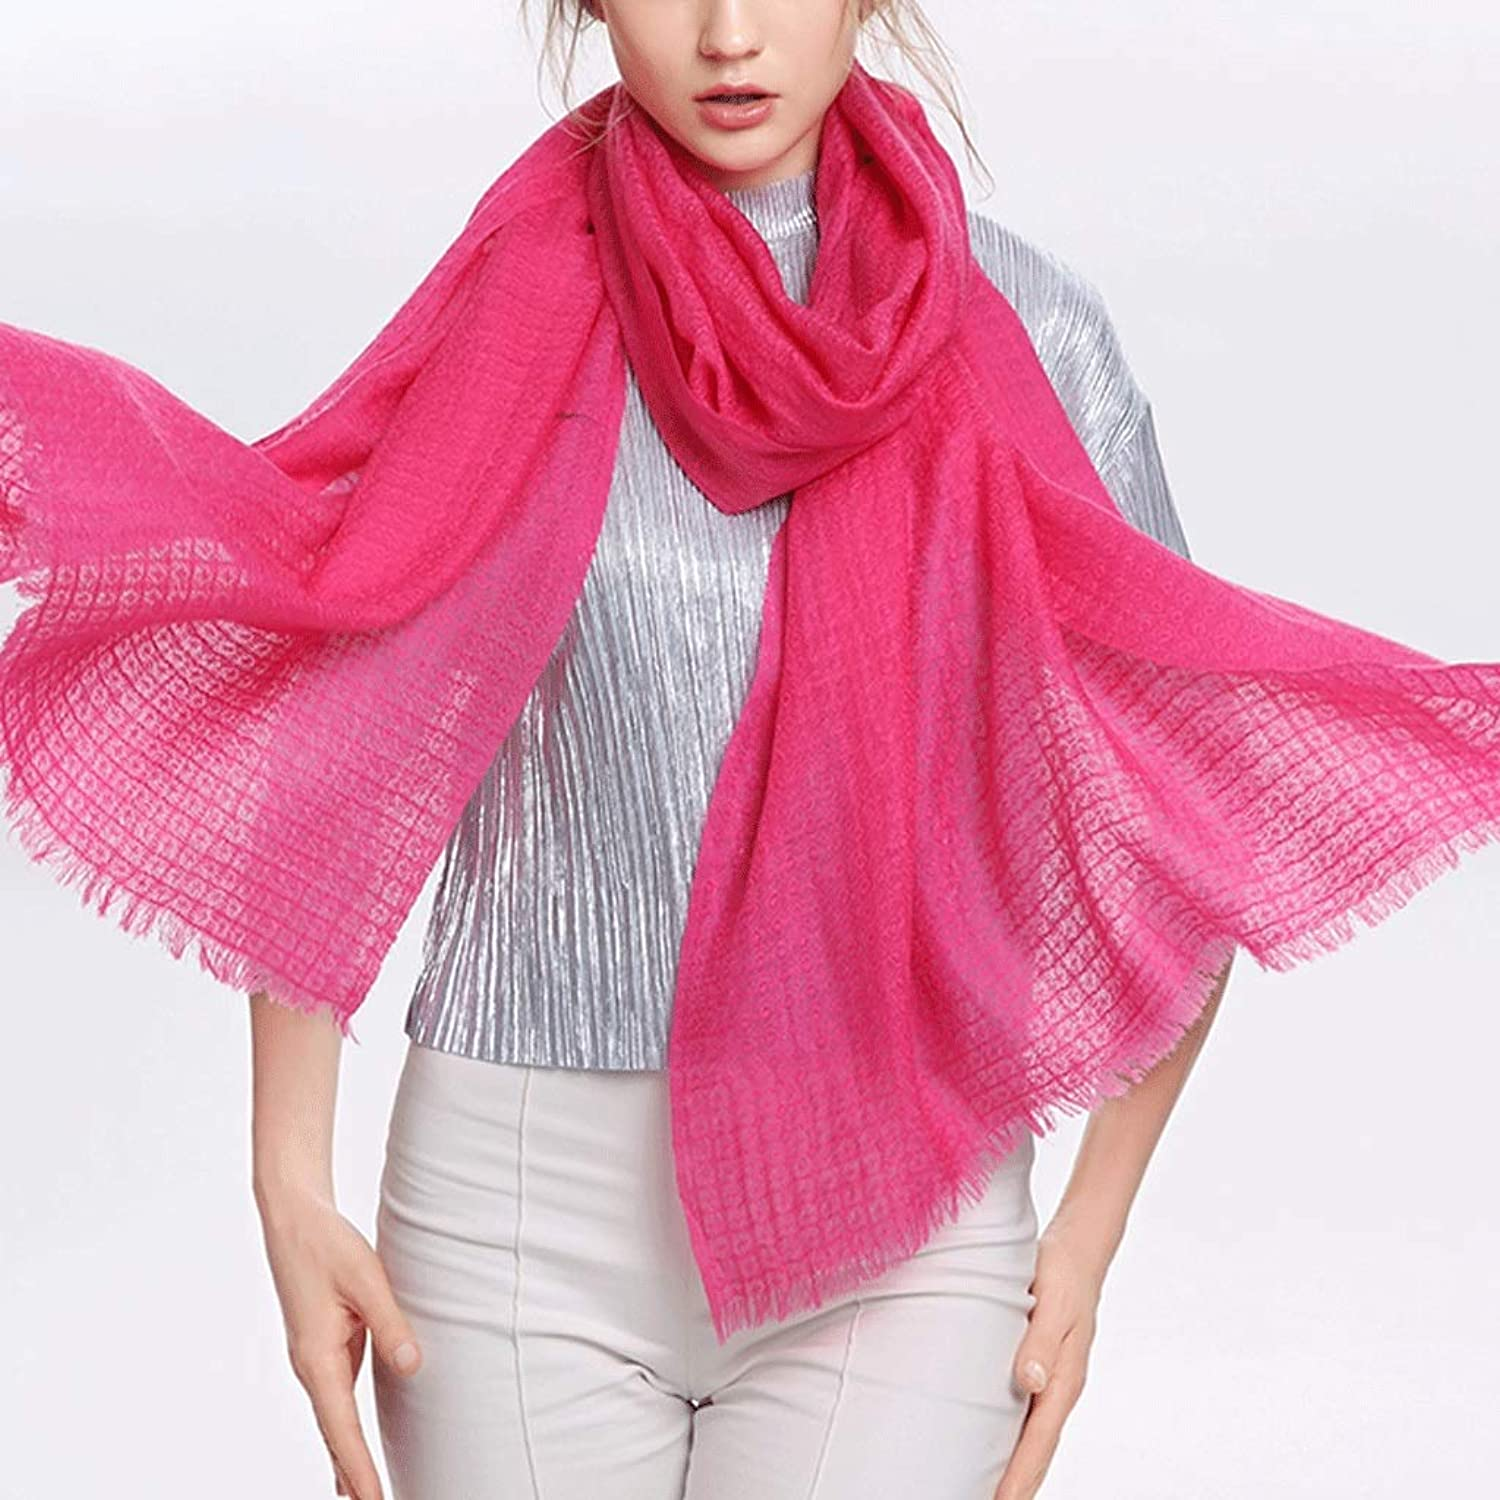 CCF Scarf 200cm×70cm Woman Thin Section Soft Fluffy Shawl Gift Box V (color   pink Red)